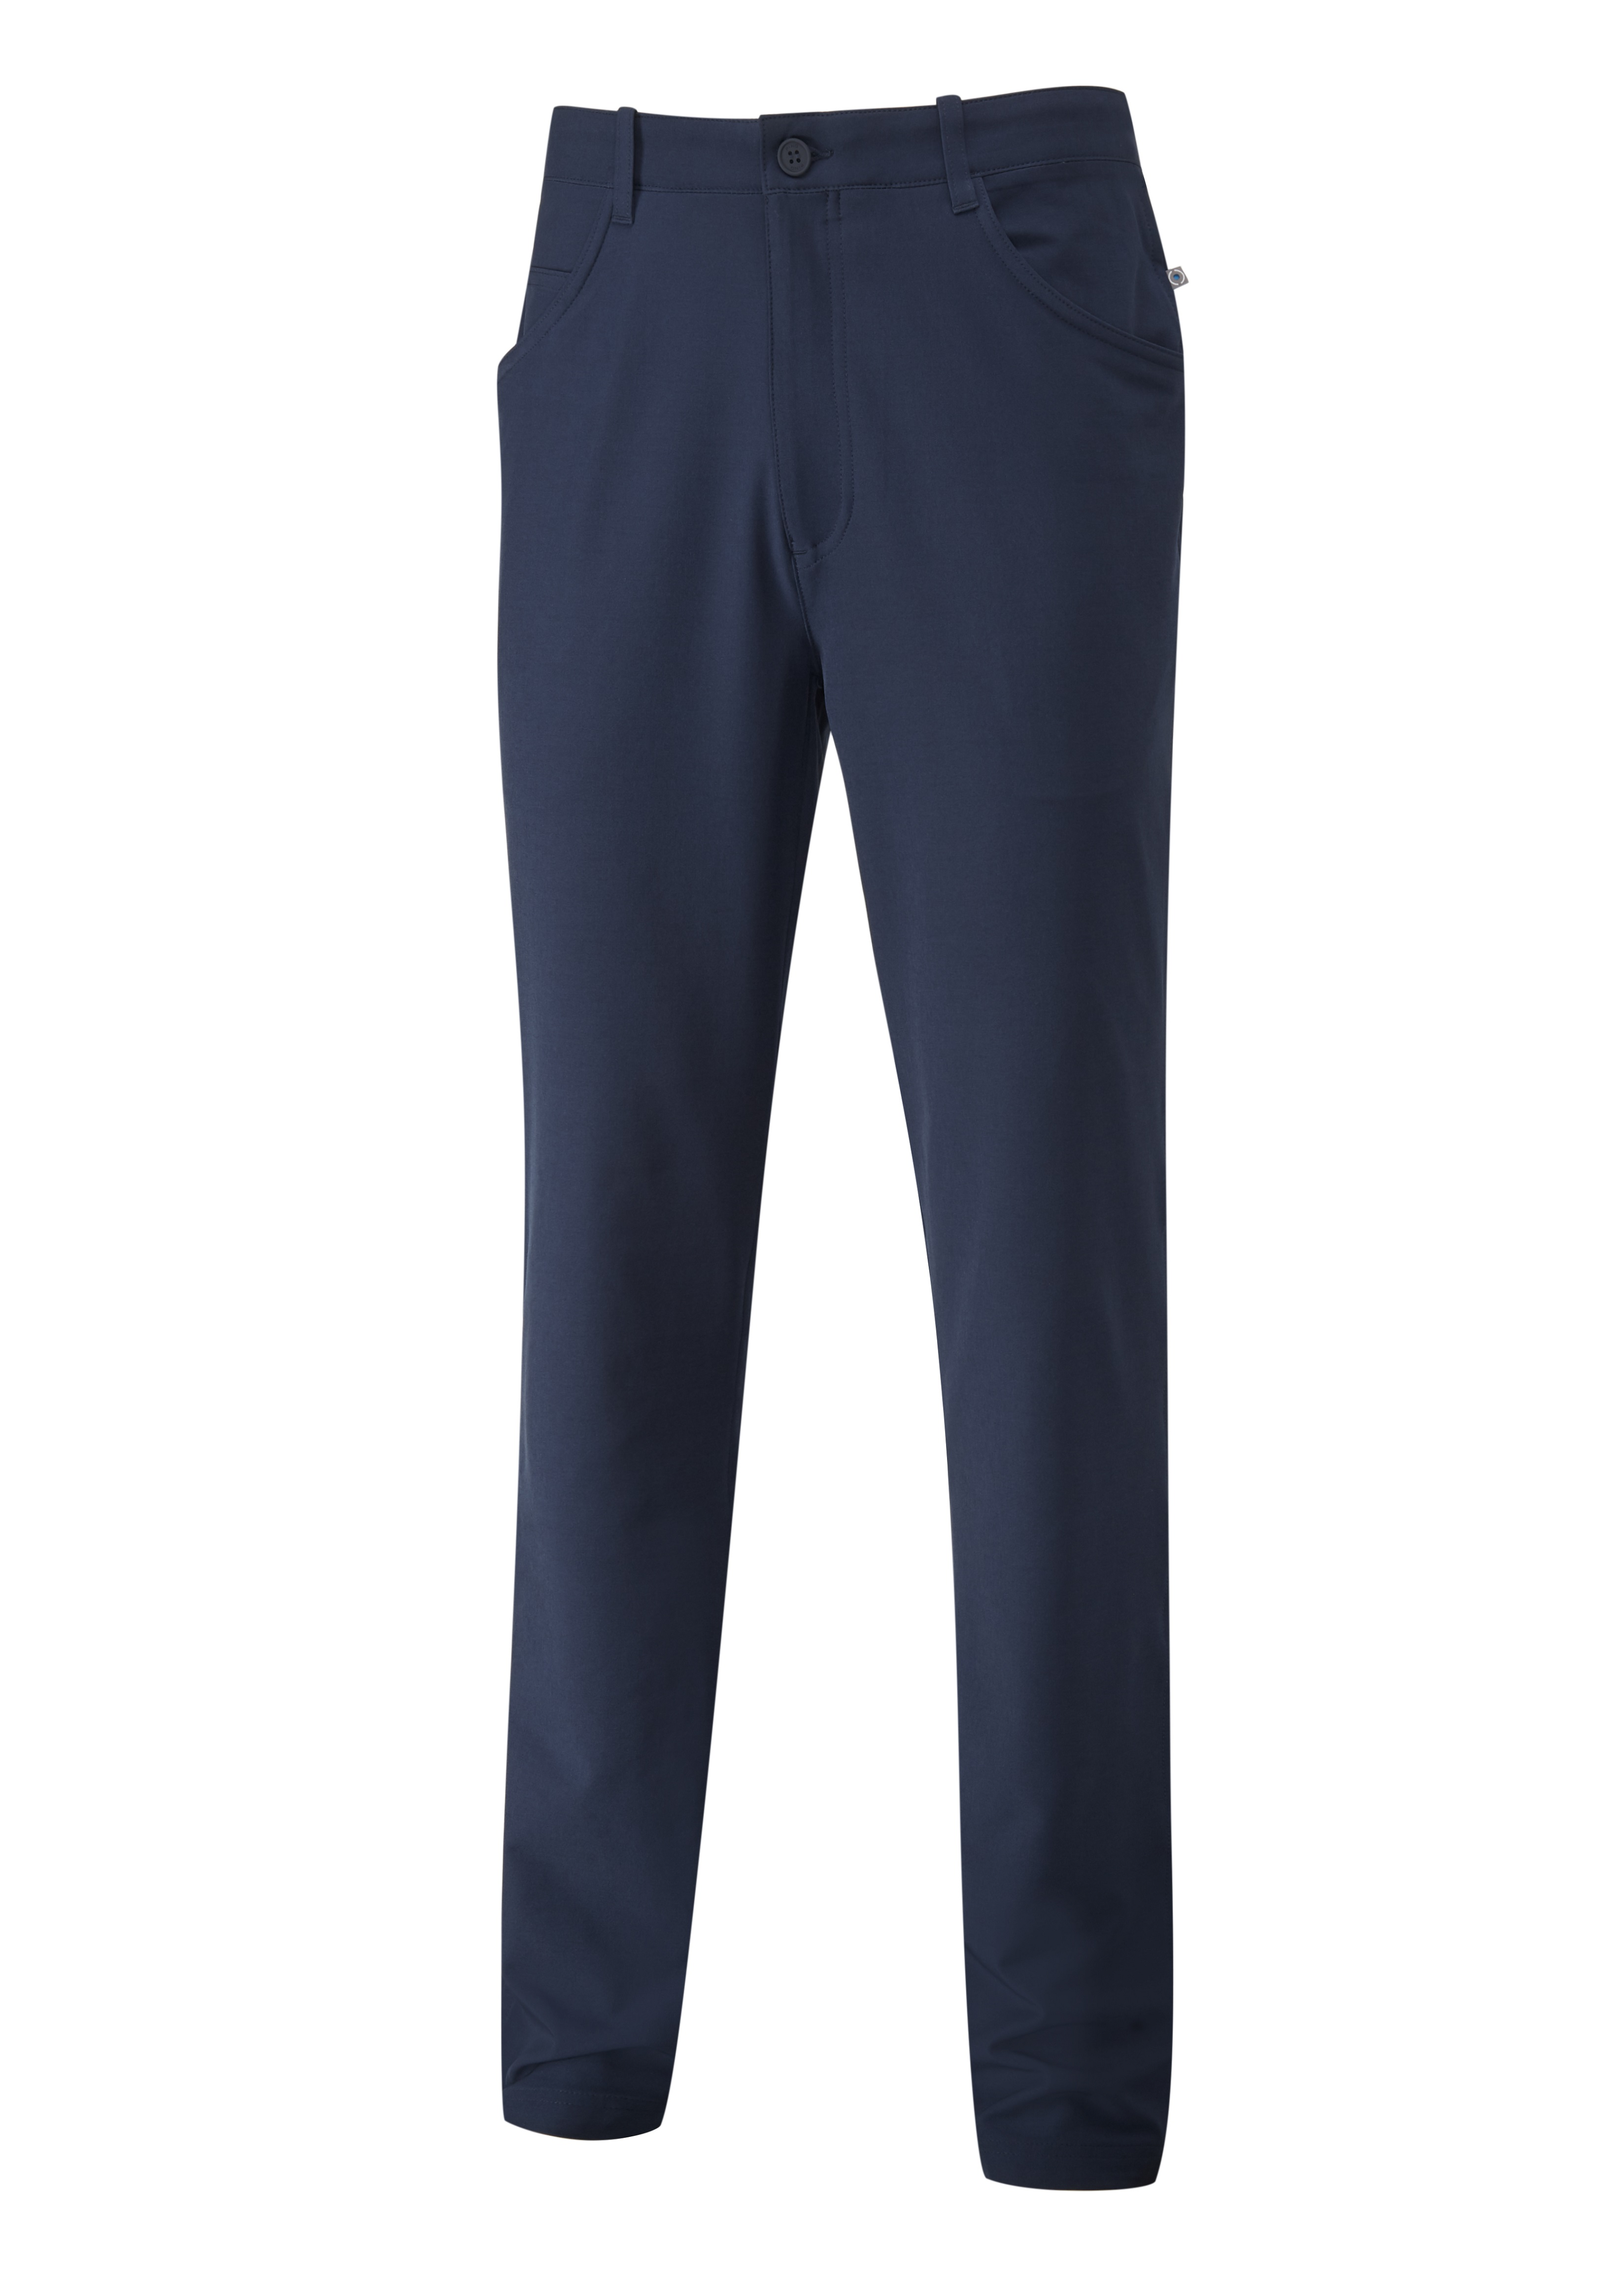 Svalkande vår/sommar-kollektioner från Ping - Players. Five-pocket performance trouser with a slim-fit leg. Engineered with moisture-moving and quick-drying qualities, combined with a four-way stretch design.